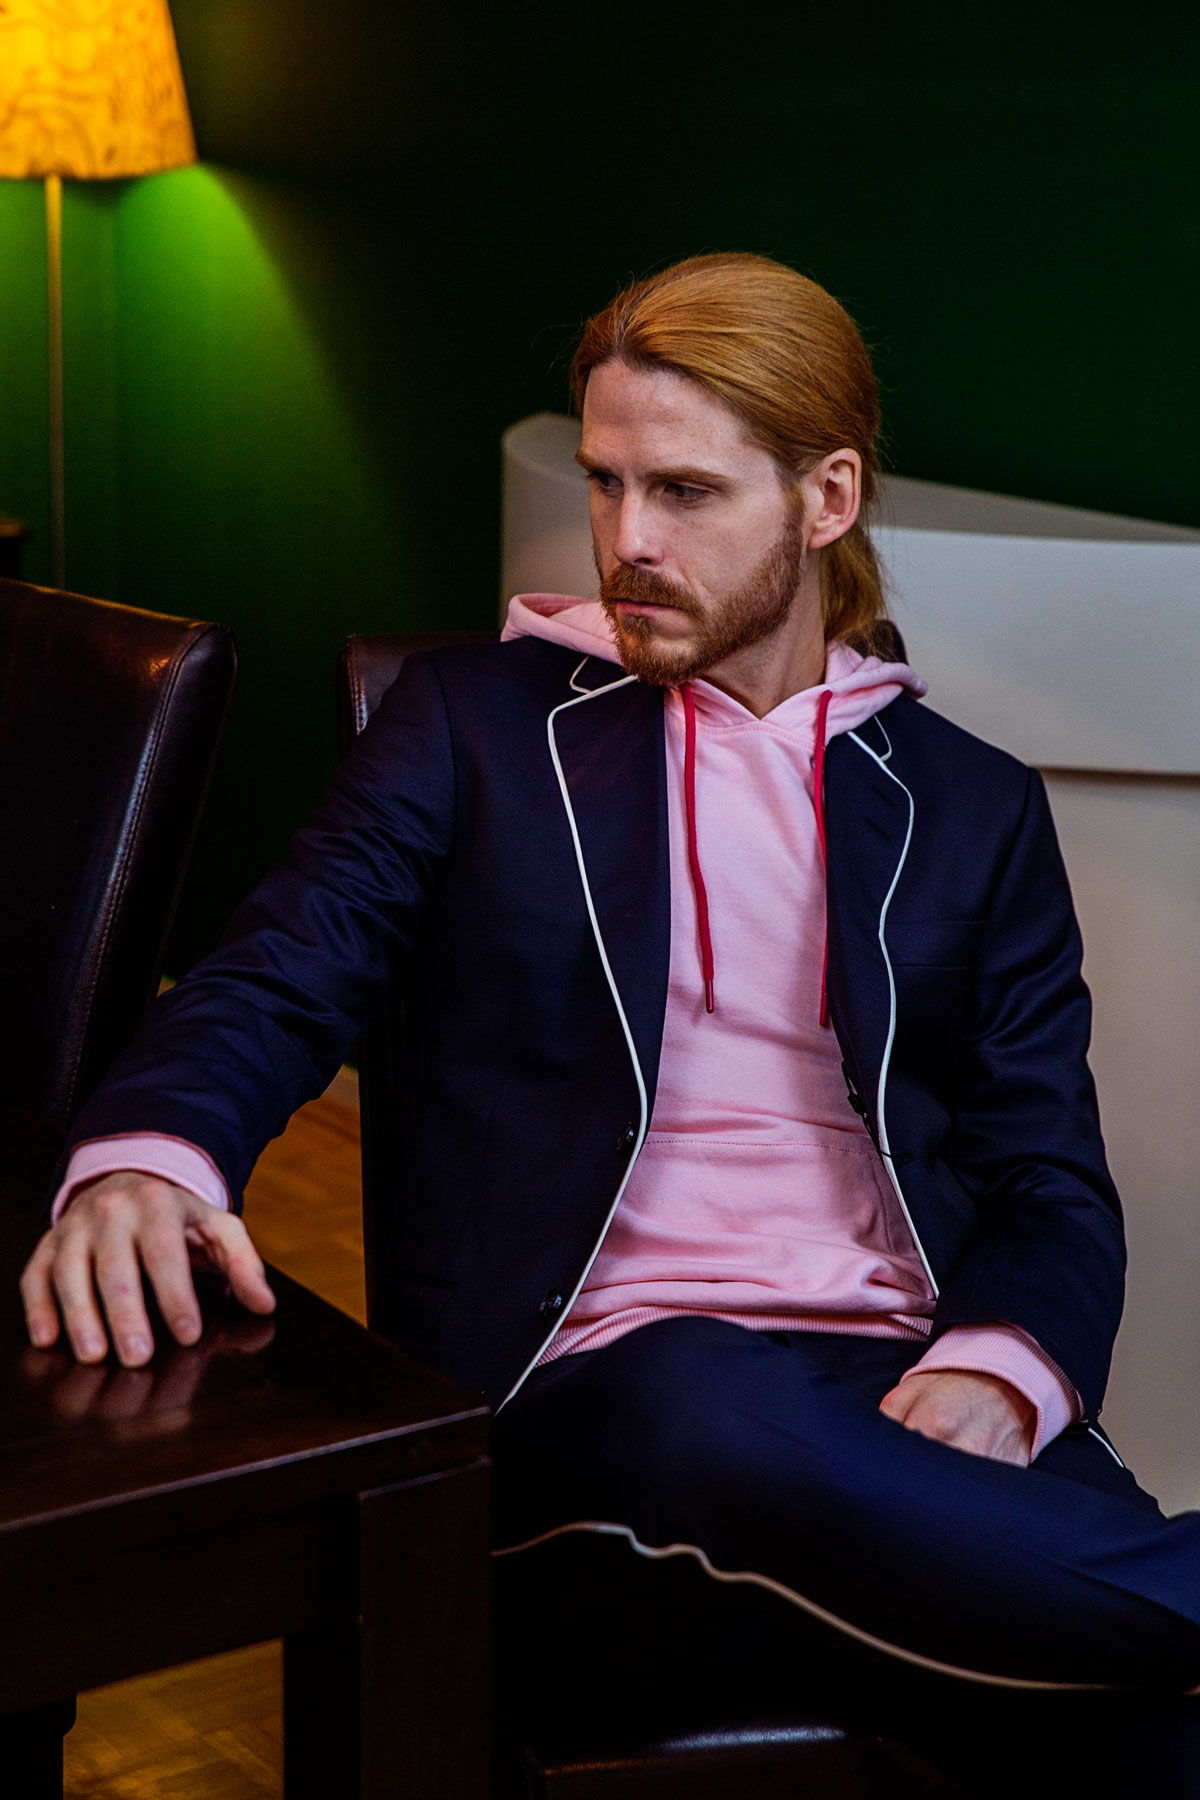 Tiger-of-Sweden-Anzug-Hoodie-Outfit-Malefashion-Kombination-Pink